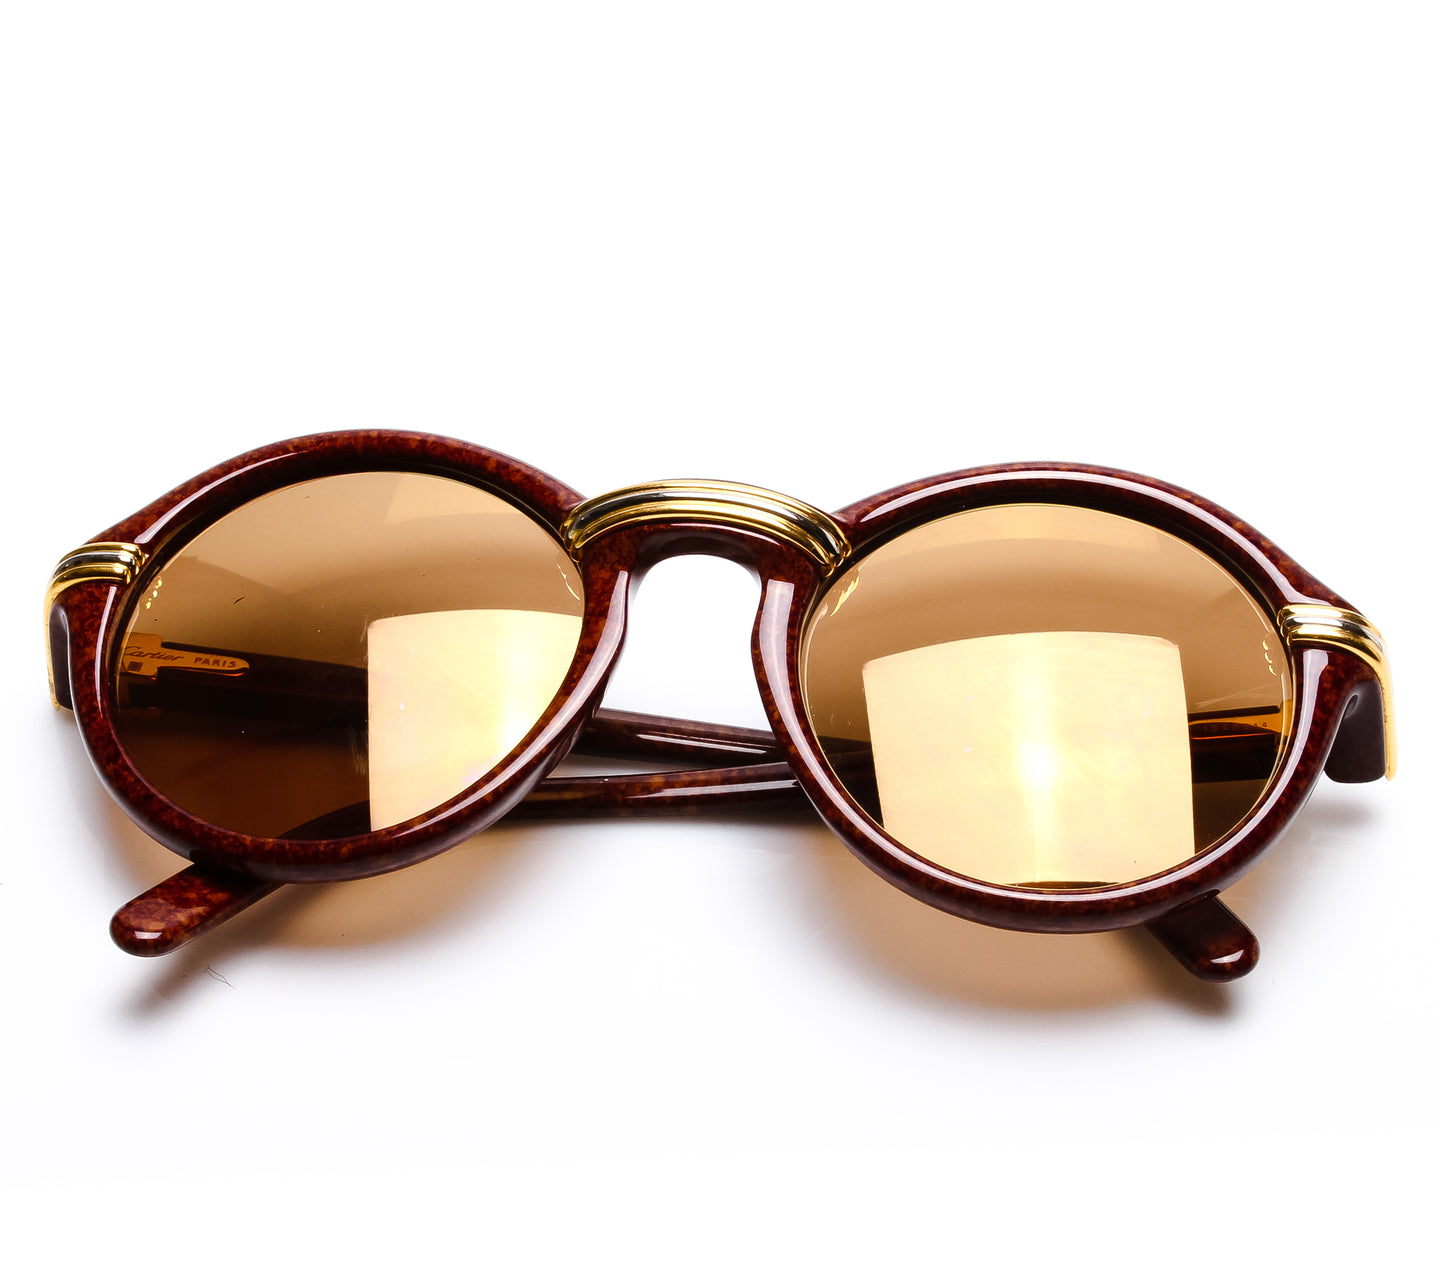 Cartier Cabriolet Thumbnail, Cartier , glasses frames, eyeglasses online, eyeglass frames, mens glasses, womens glasses, buy glasses online, designer eyeglasses, vintage sunglasses, retro sunglasses, vintage glasses, sunglass, eyeglass, glasses, lens, vintage frames company, vf